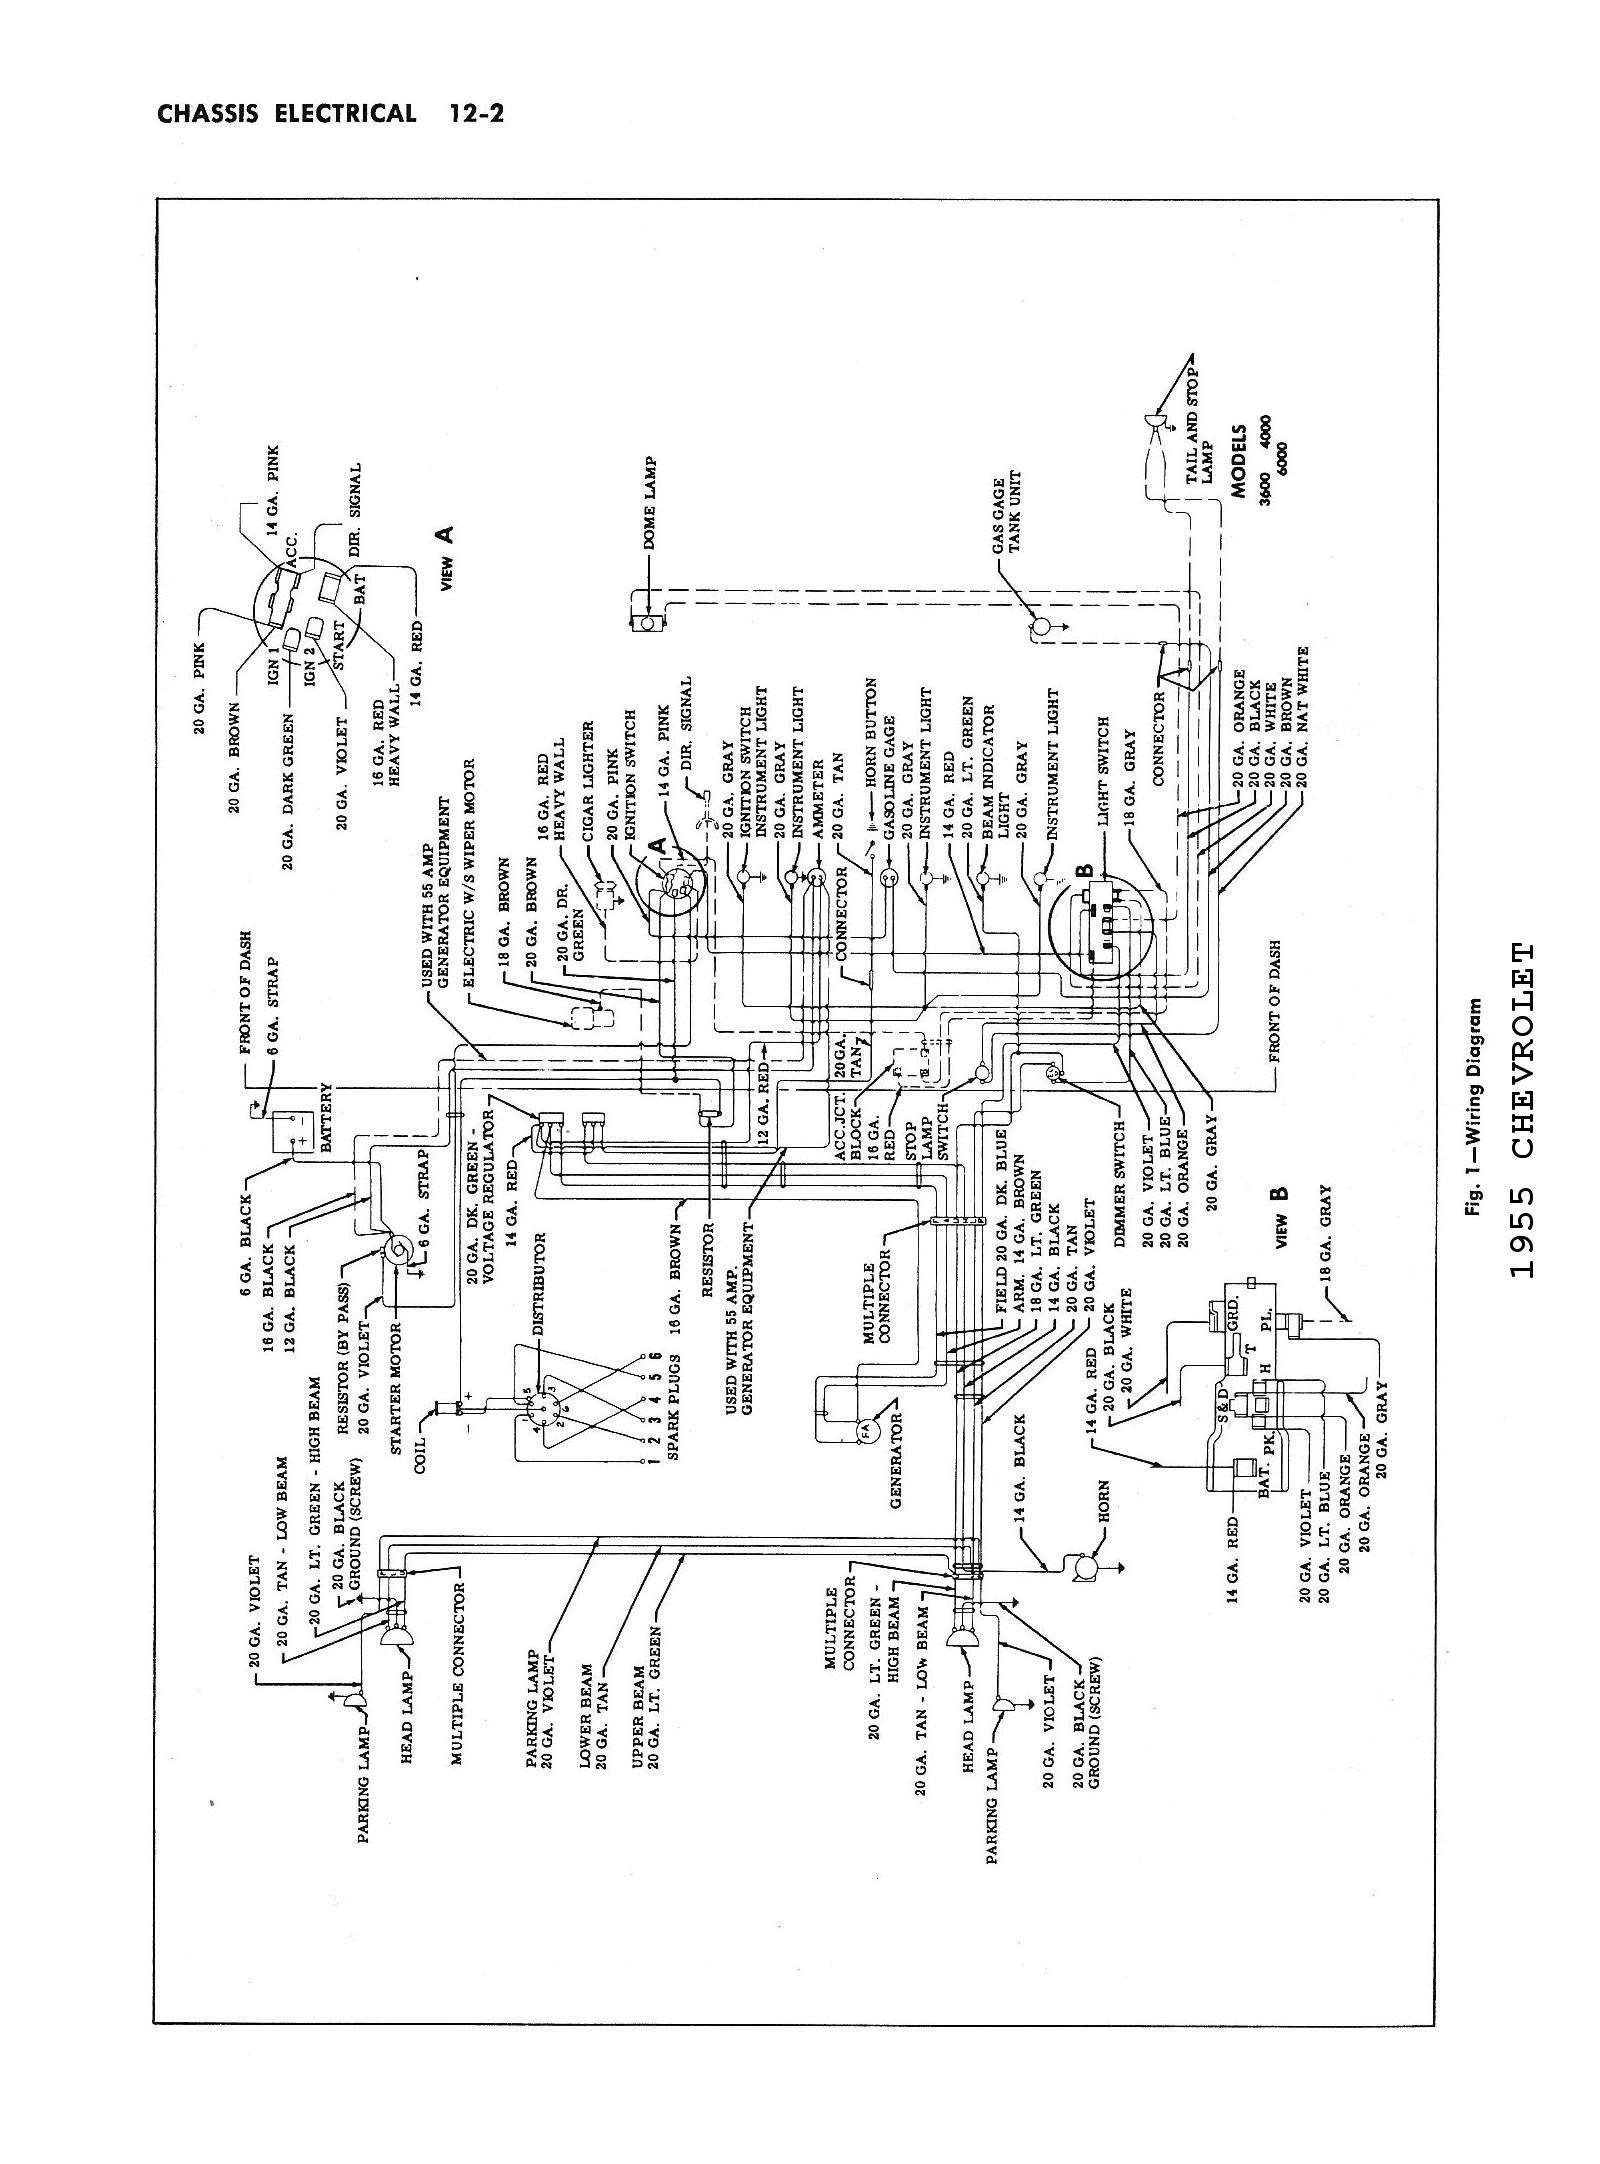 1957 chevy truck wiring diagram 1999 ford f250 super duty diagrams